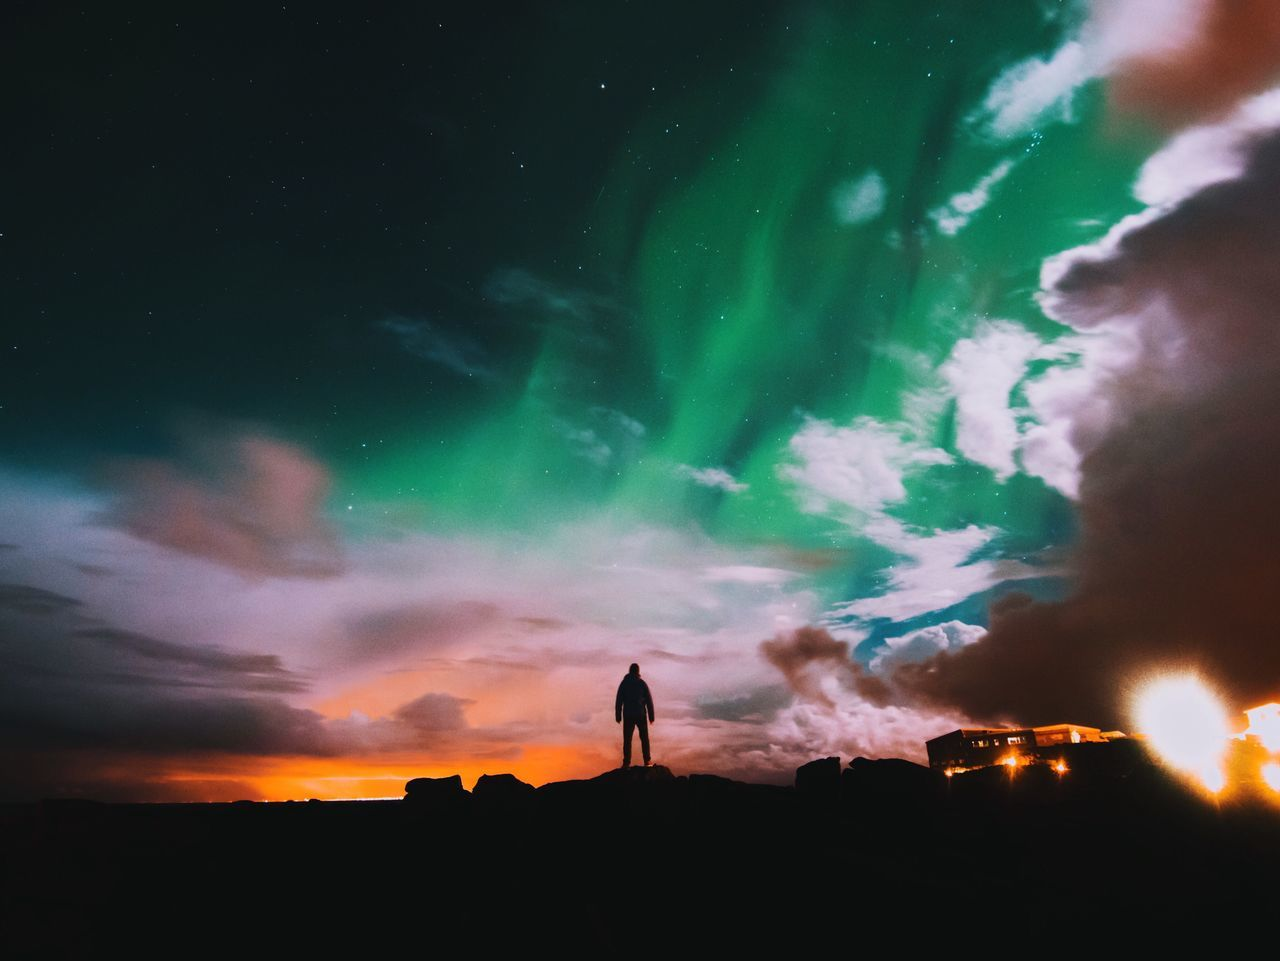 People And Places Iceland Northern Lights Lights Night City Reykjavik Kevlavik Cloud Chaotic Red Green Night Lights Nightphotography Starry Sky Full Moon Overnight Success My Year My View